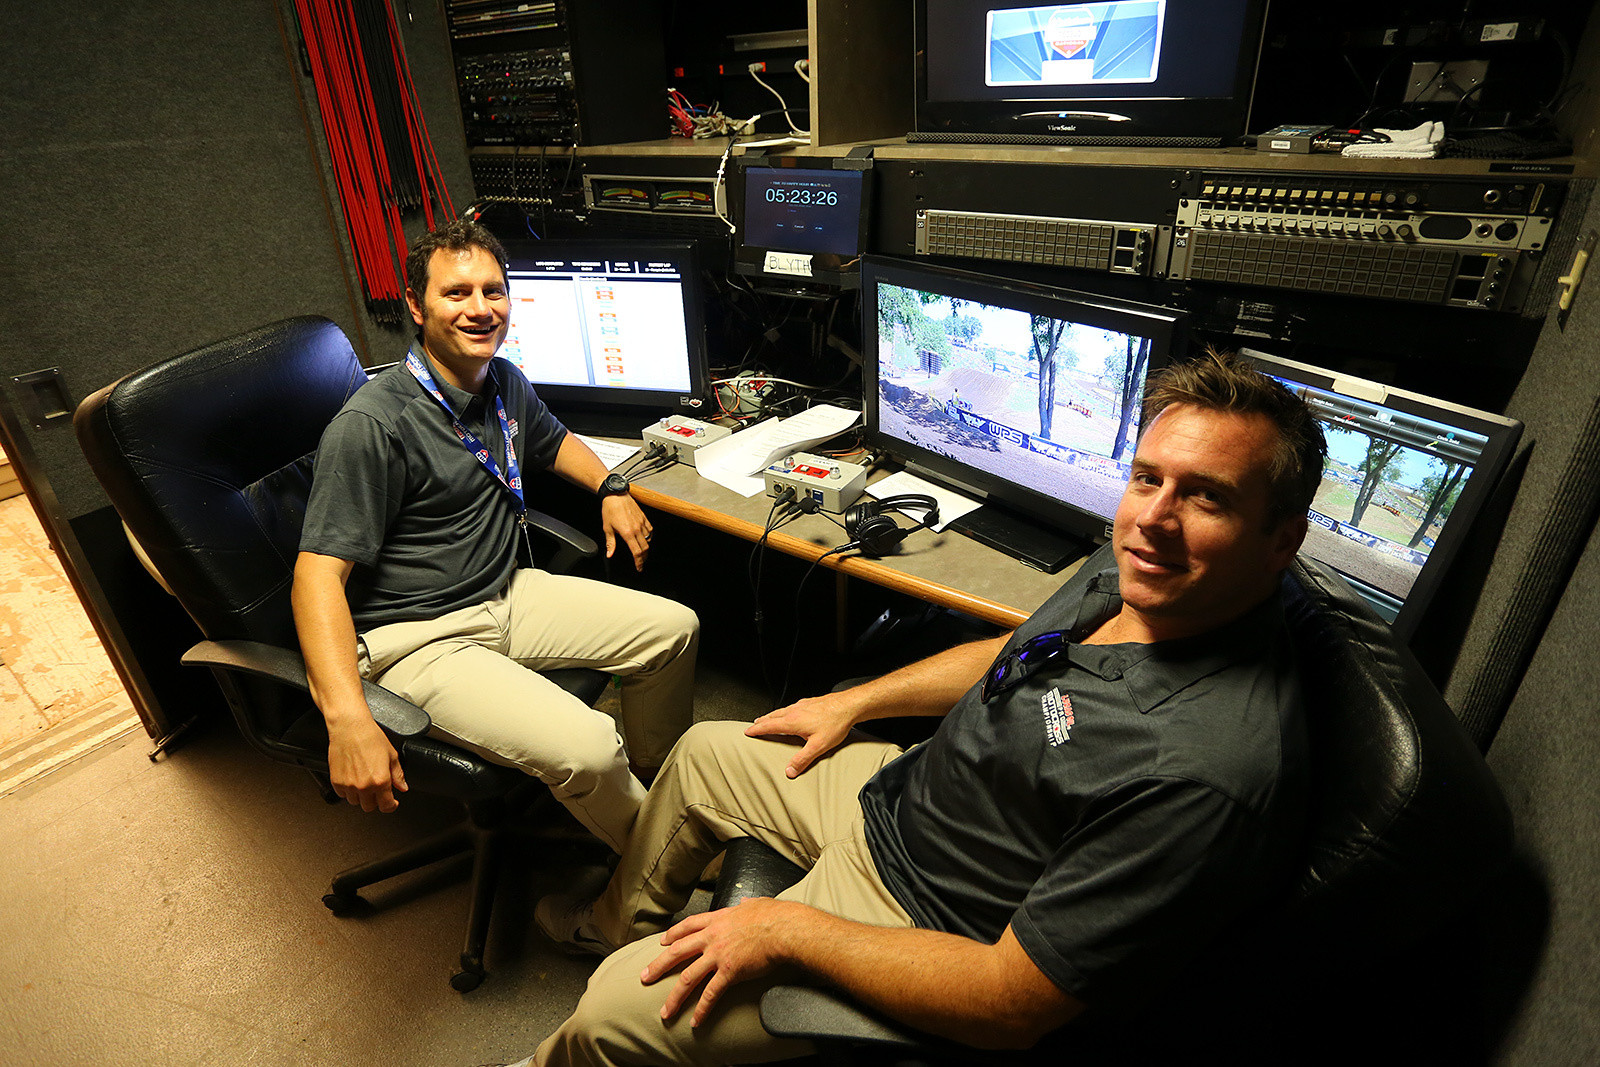 The announcing crew of Jason Weigant and Grant Langston are in a separate trailer from the director and producer, and have monitors for timing and scoring, the live view being shown to viewers, a preview screen for upcoming replays, and a telestrator (behind Grant). There's also a countdown clock so they know how long before the show starts, and to count in from breaks.